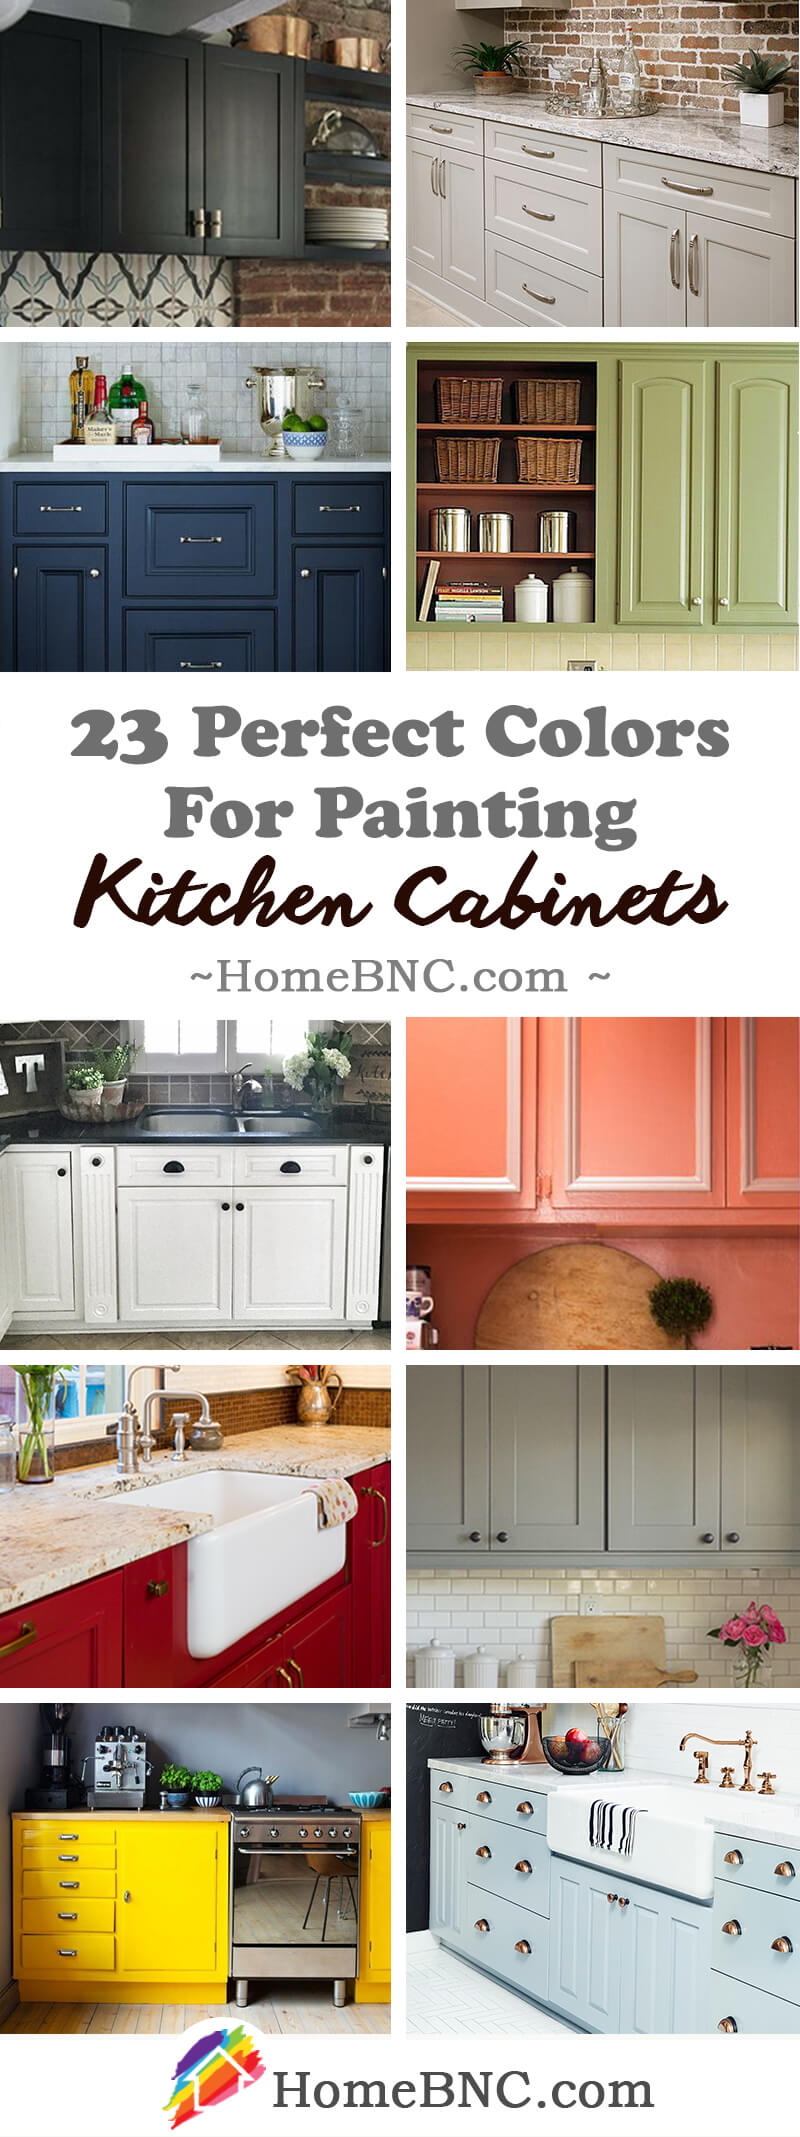 23 Best Kitchen Cabinets Painting Color Ideas and Designs ...